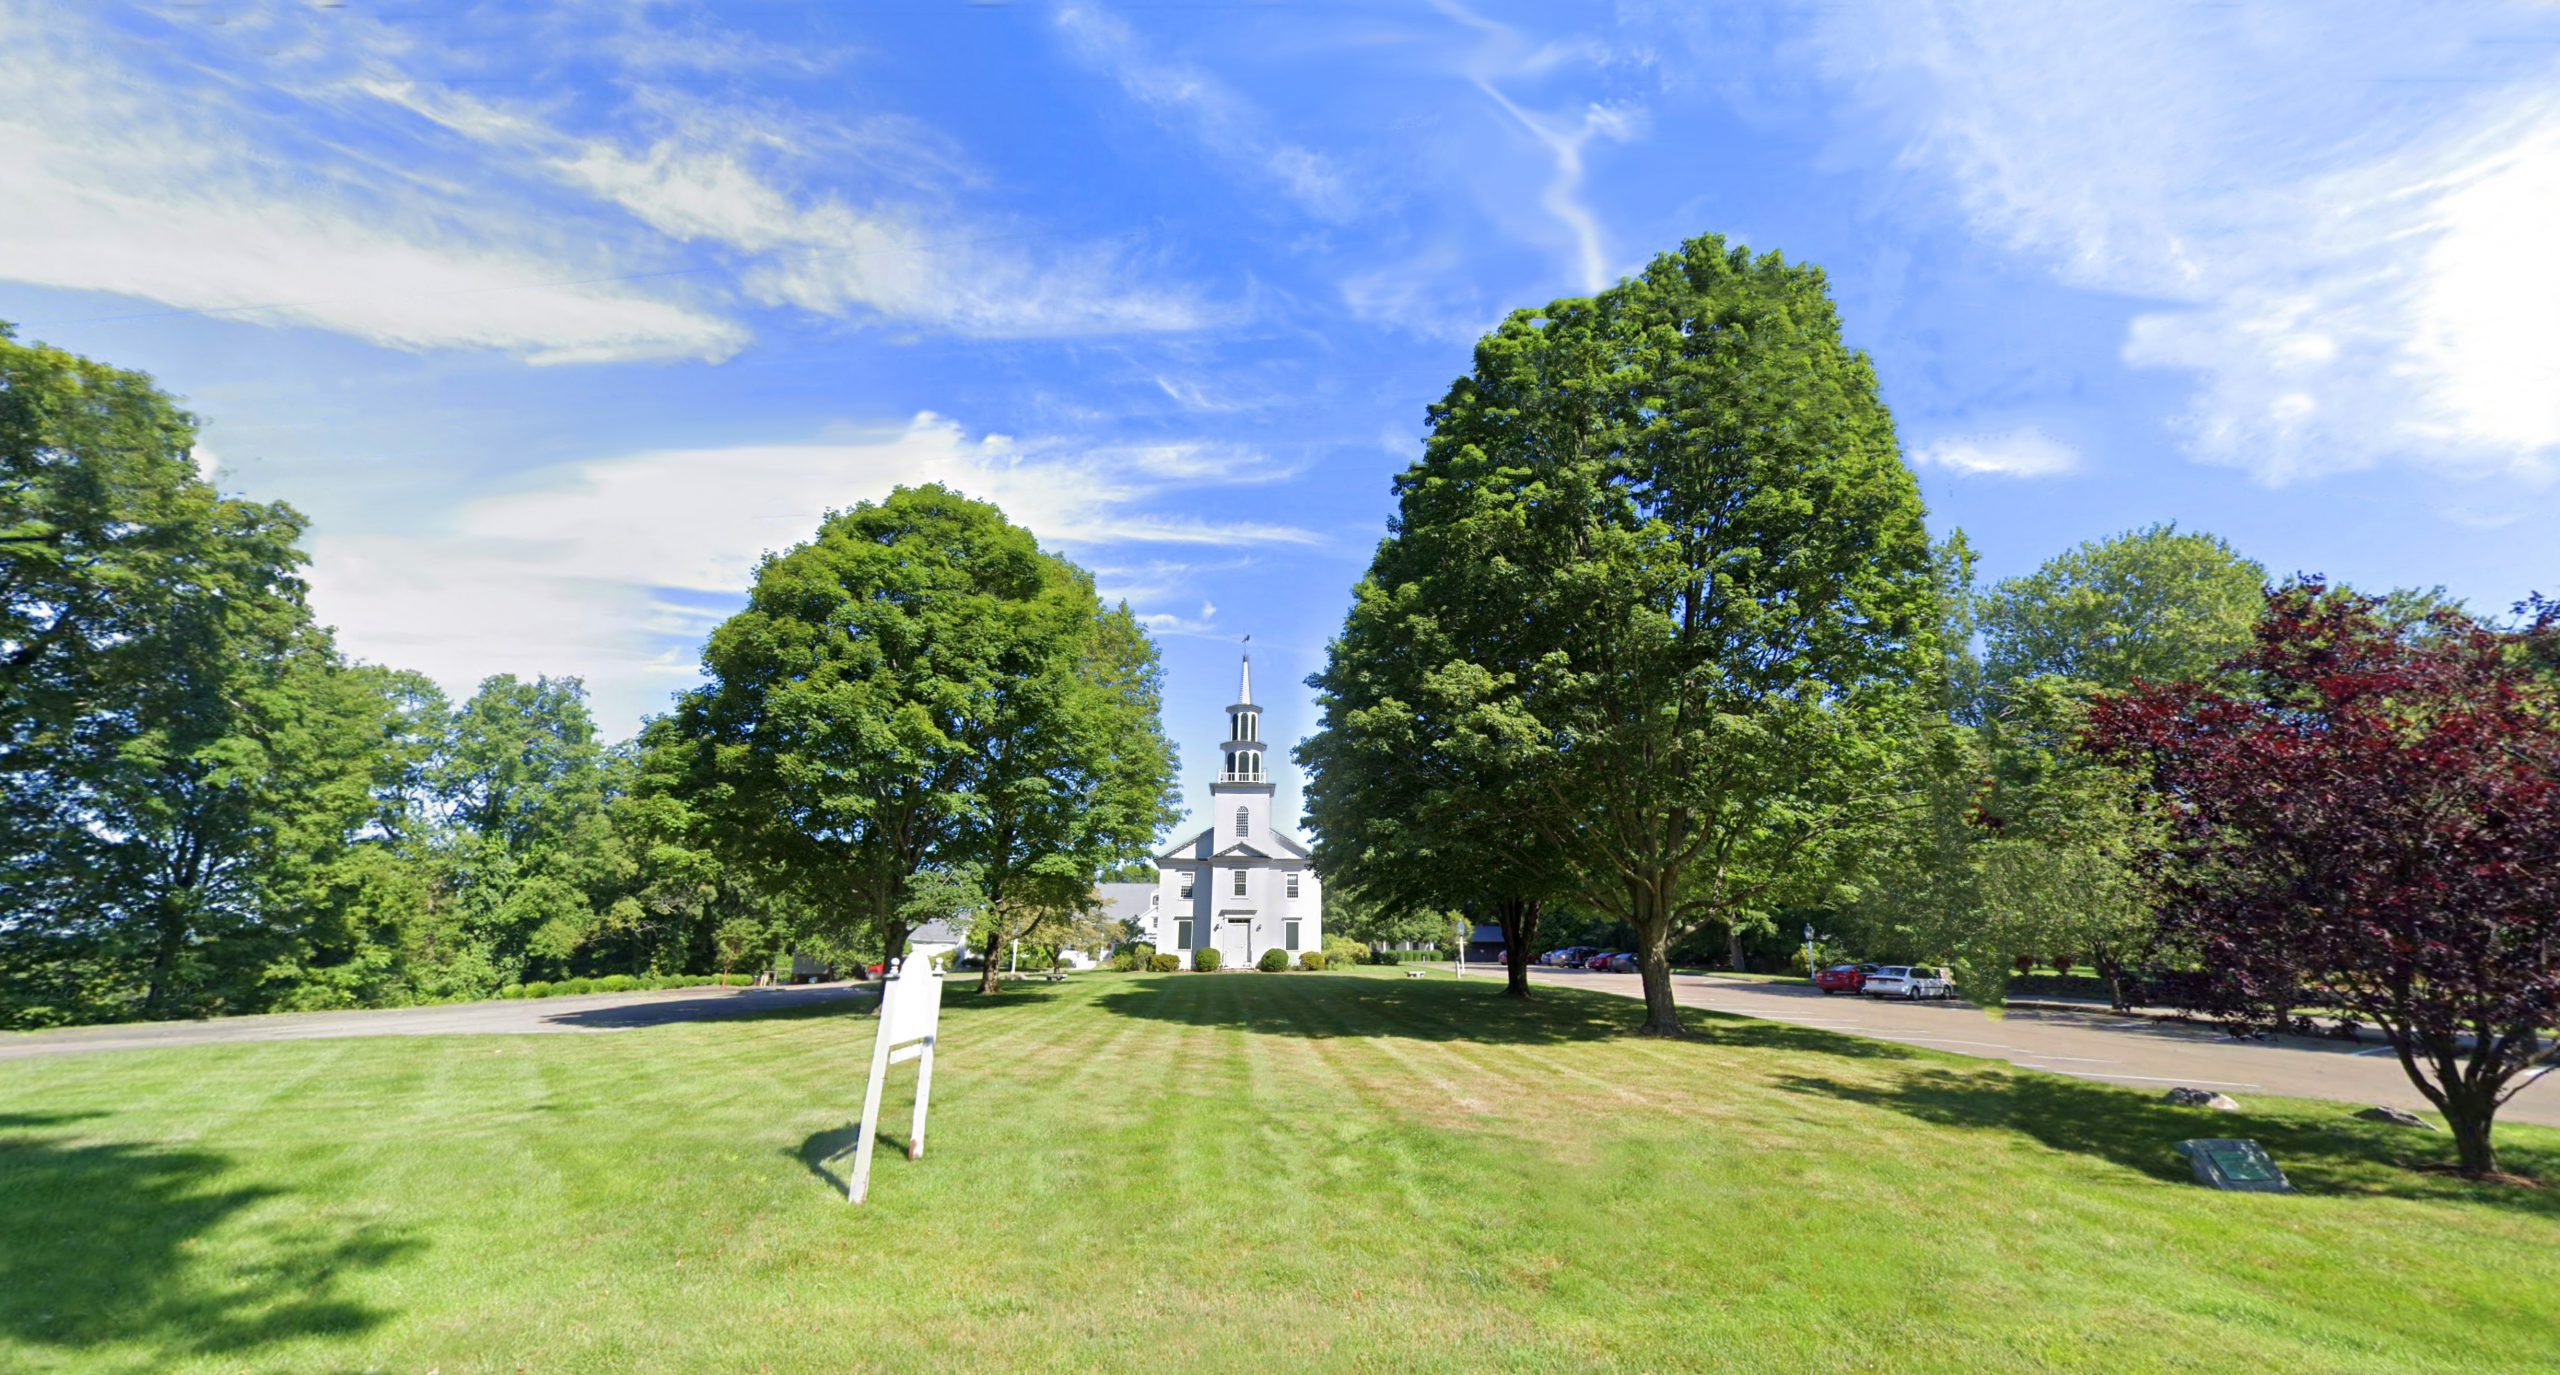 norfield church front lawn